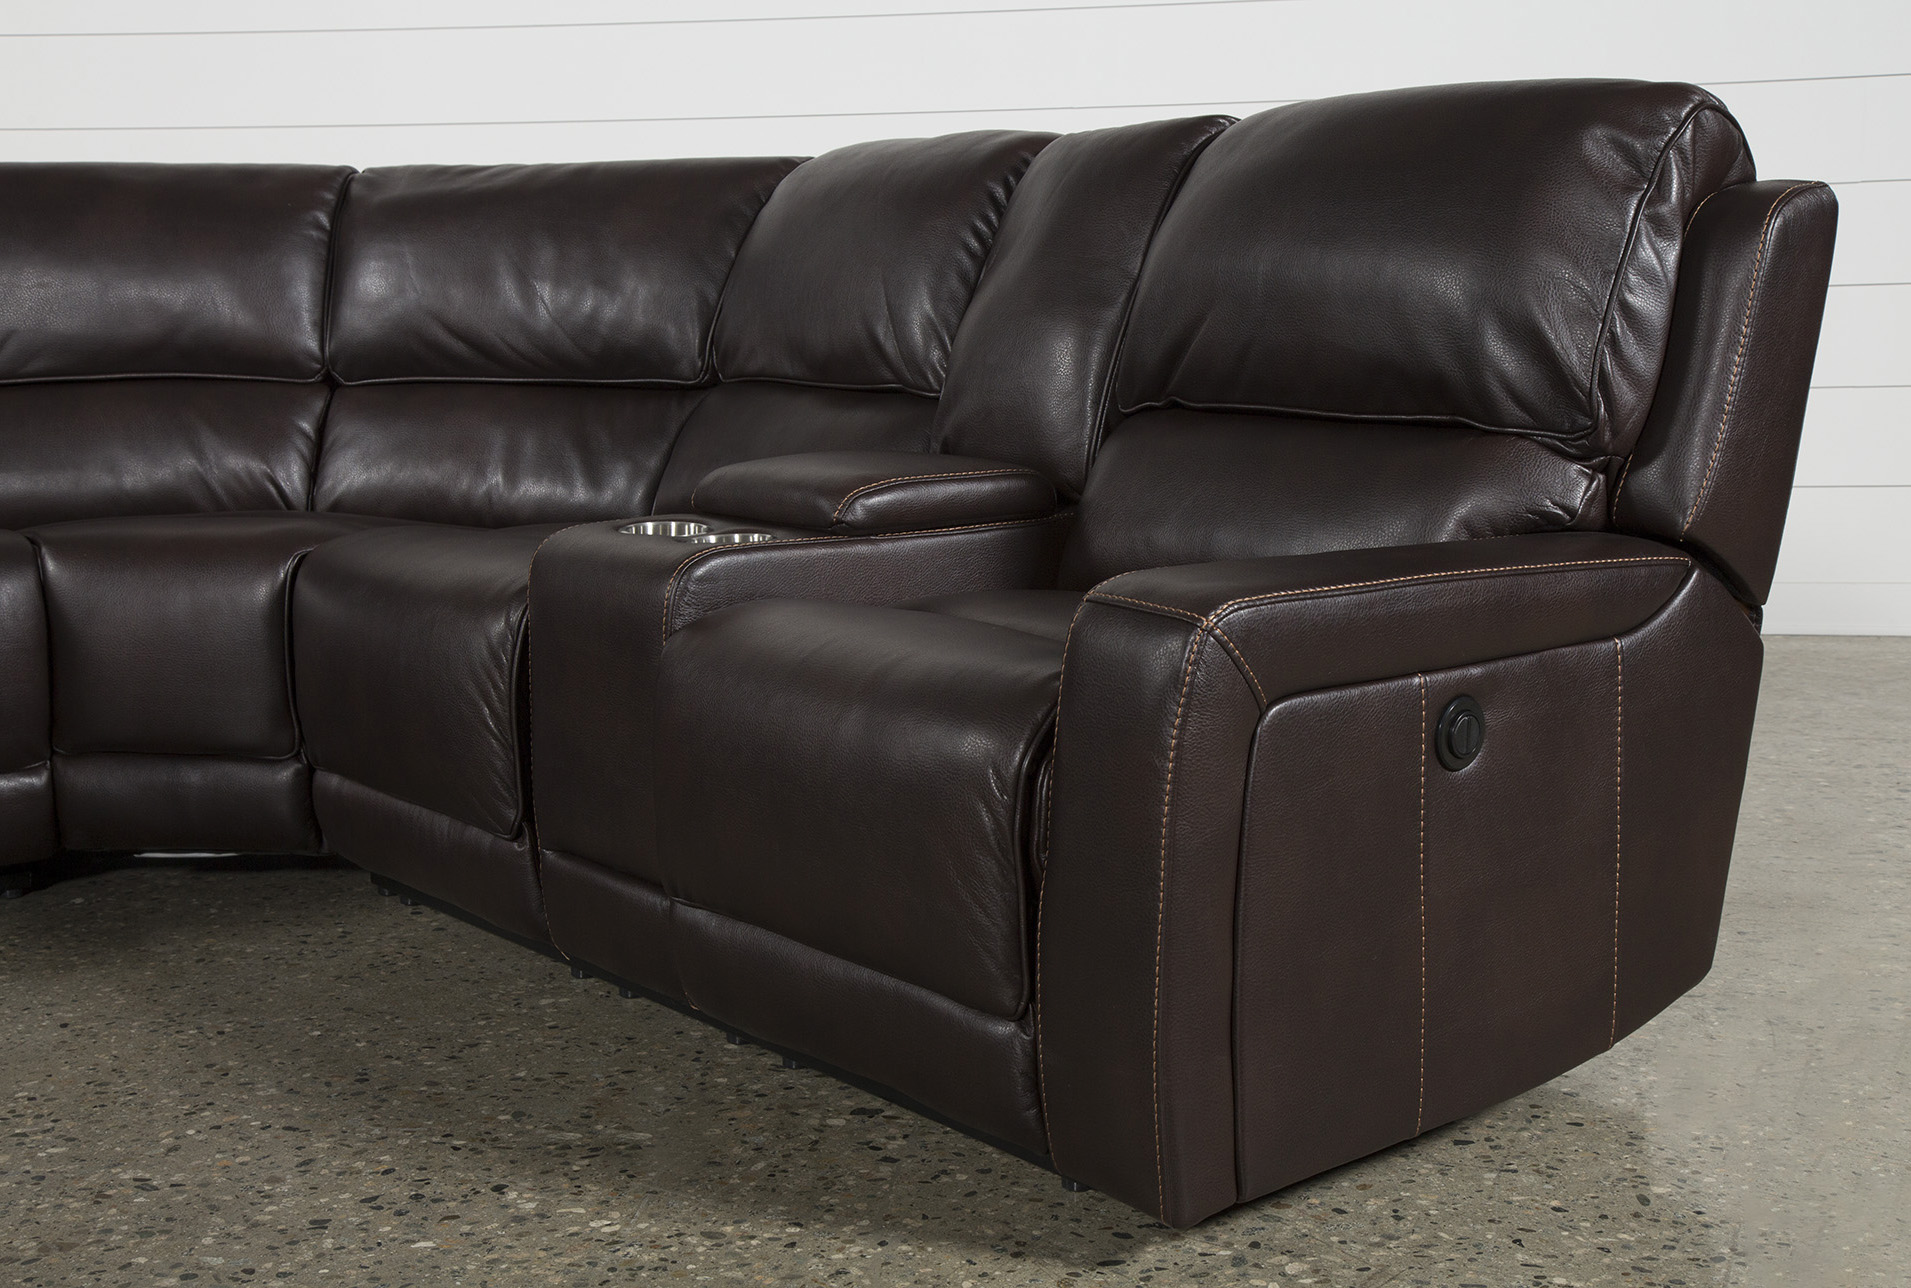 Outstanding Declan 3 Piece Power Reclining Sectional With Raf Console Uwap Interior Chair Design Uwaporg